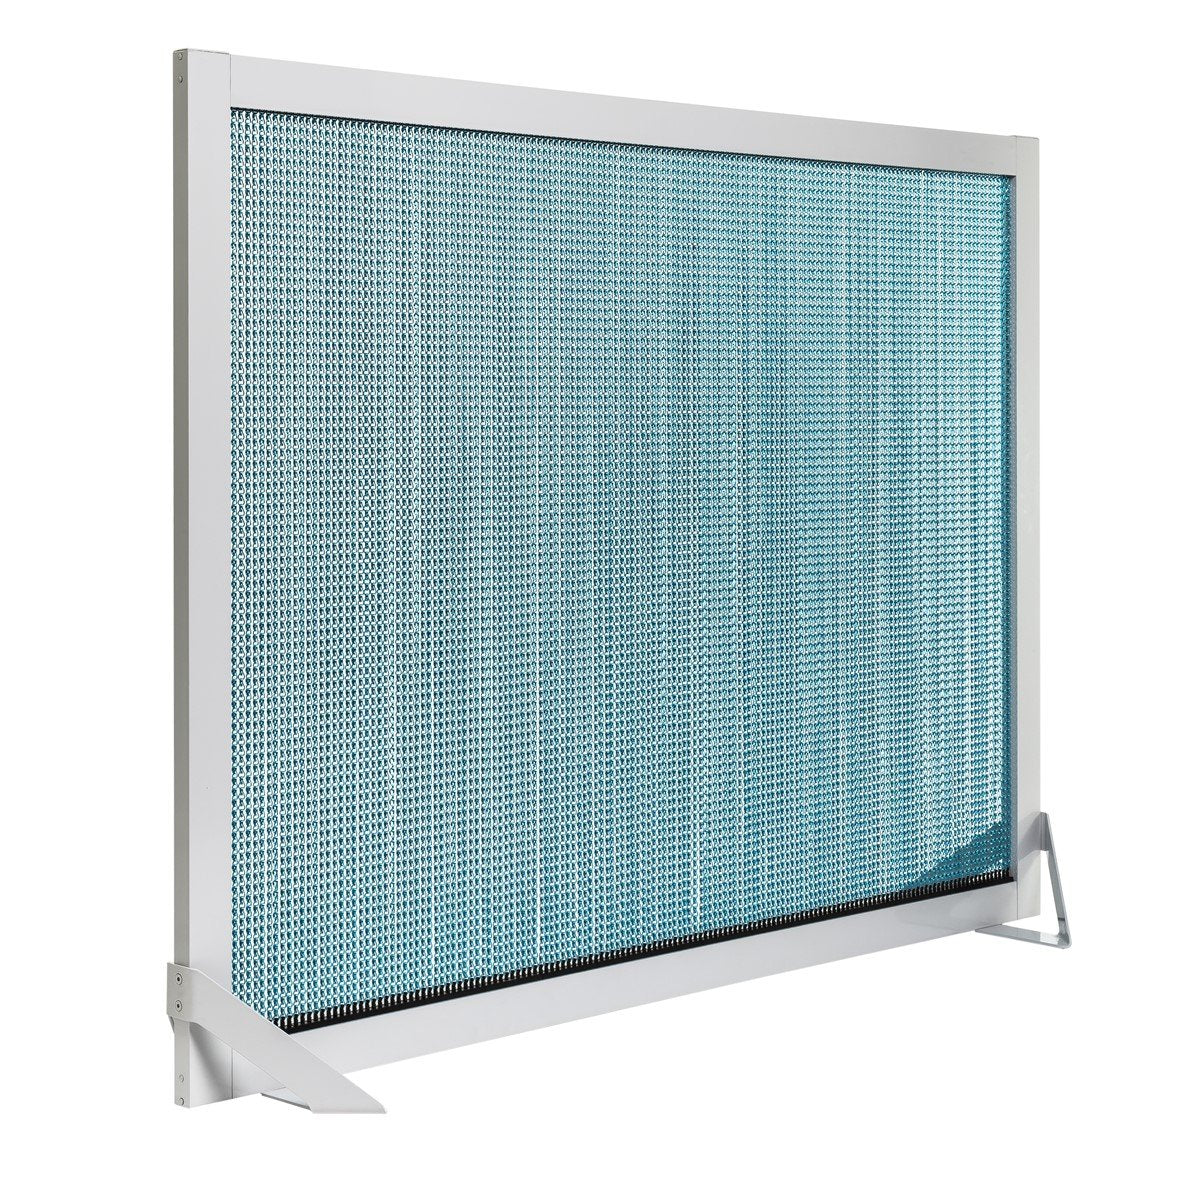 Barcelona Screen Divider Turquoise-Kriskadecor-Contract Furniture Store